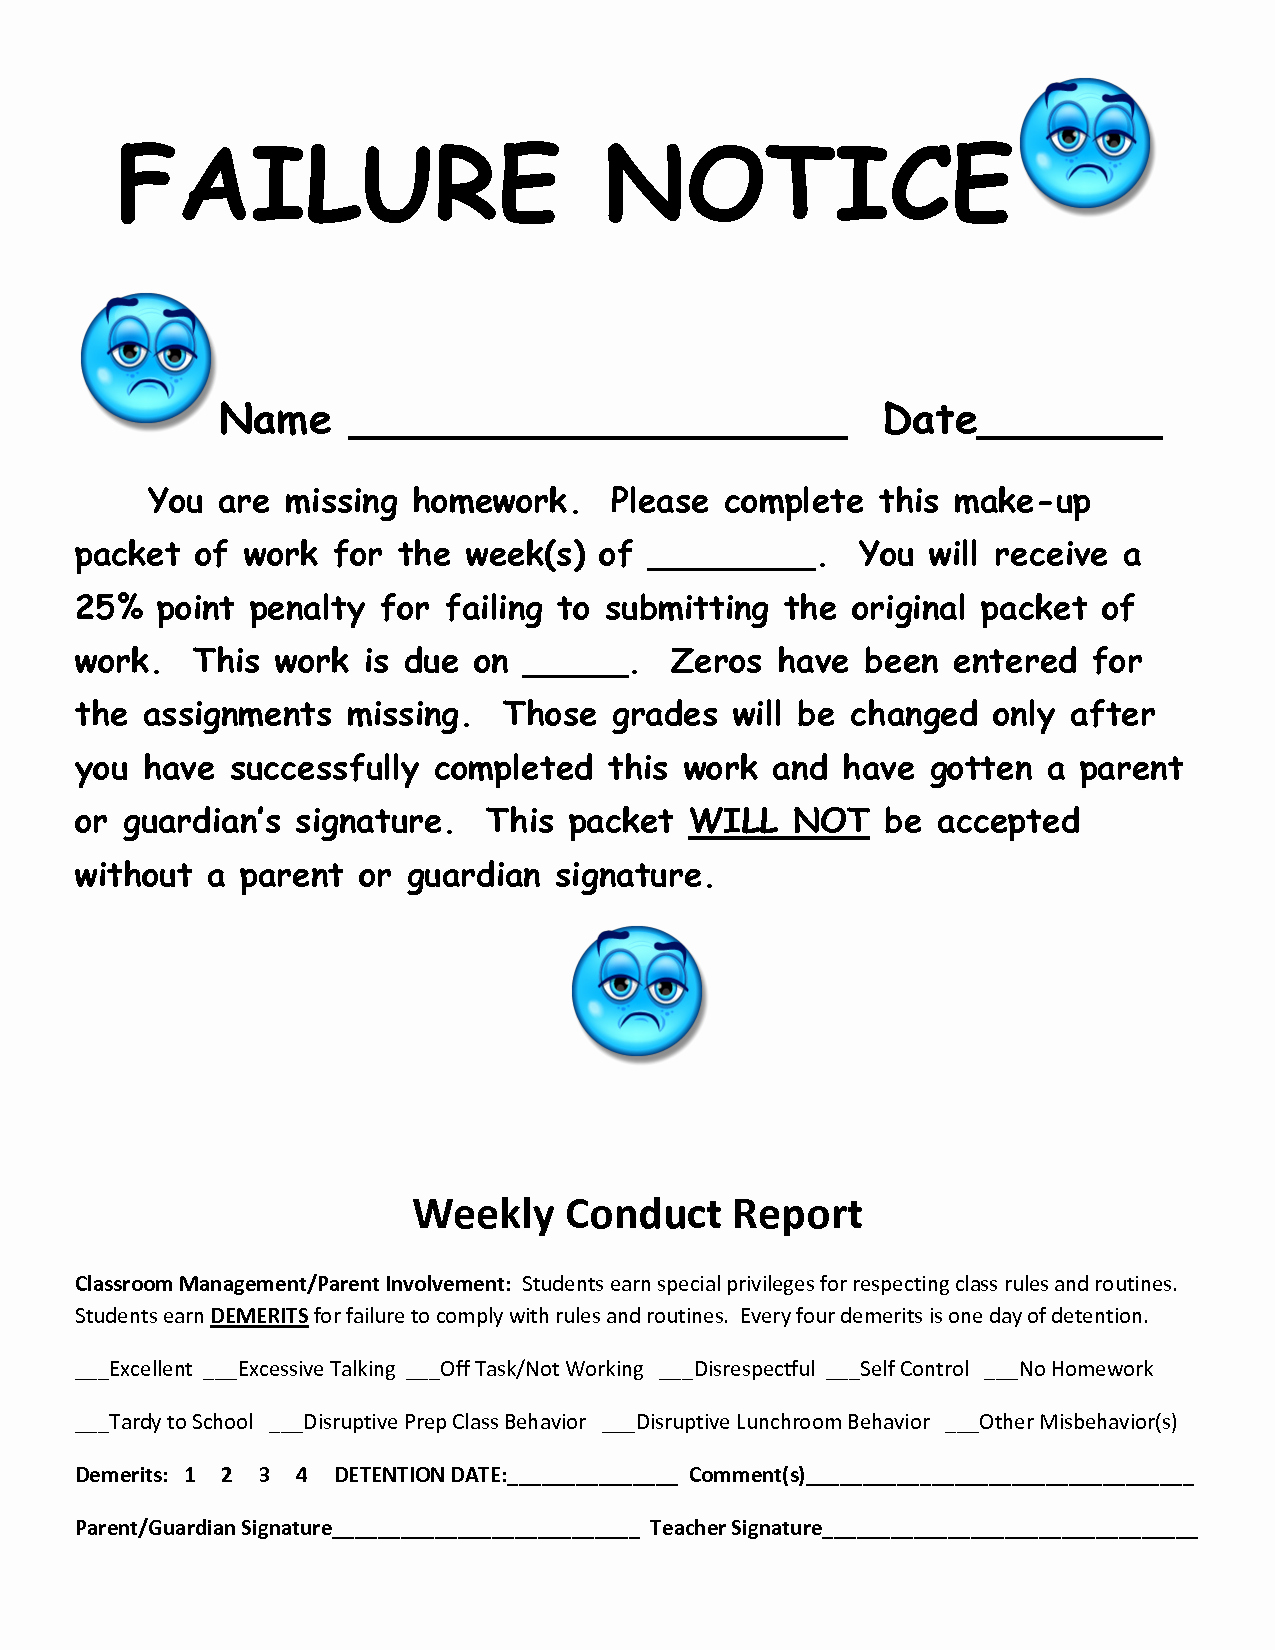 Letters to Parents Template Luxury Failure Letter to Parents Template Templates Station